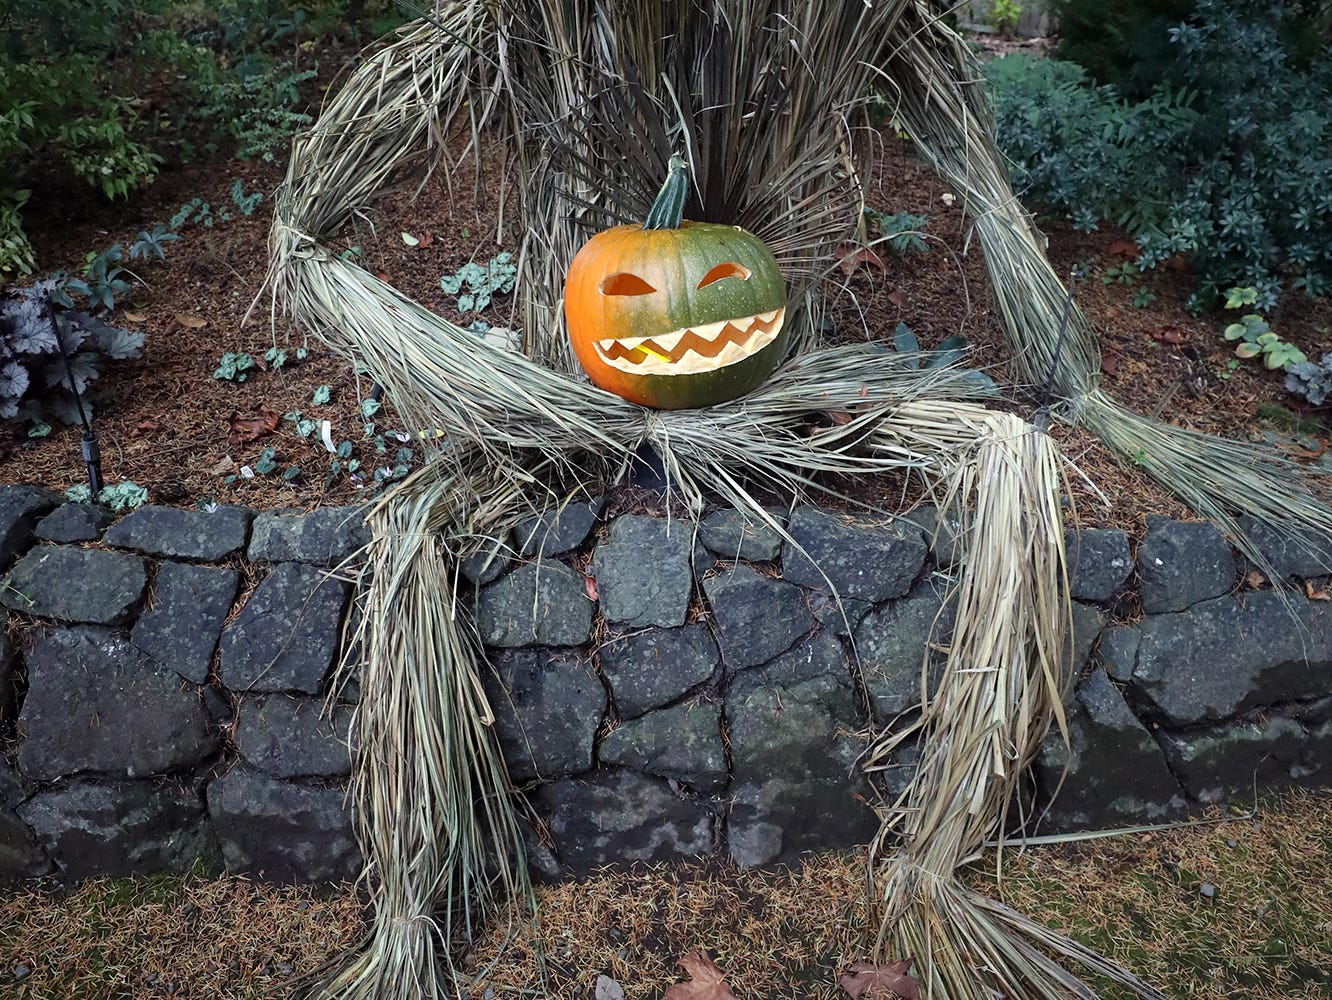 The Haunted Heronswood 2018 in Kingston was Friday and Saturday, October,26-27. The second annual garden halloween charters tour featured some S'Klallam folk stories.